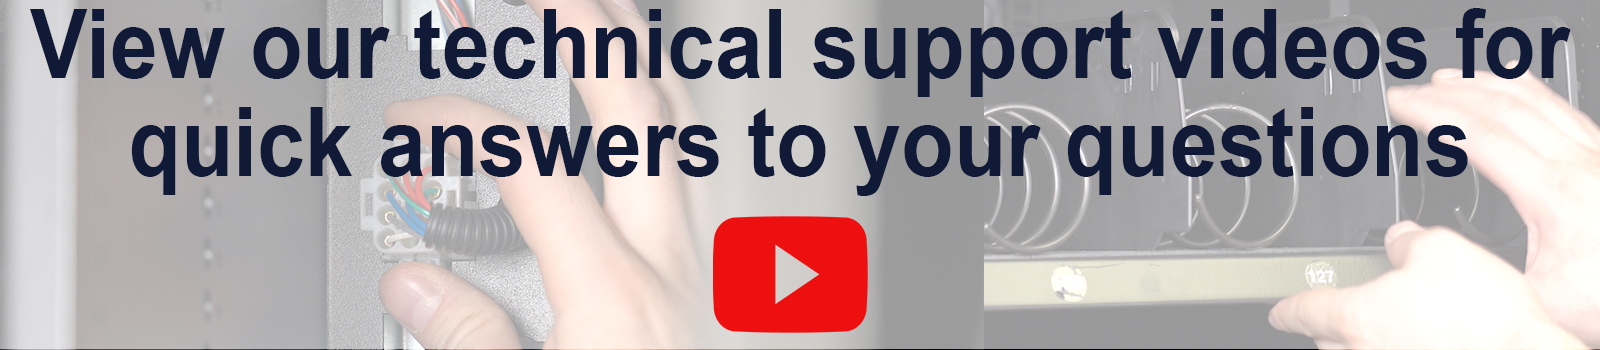 View our technical support videos for quick answers to your questions